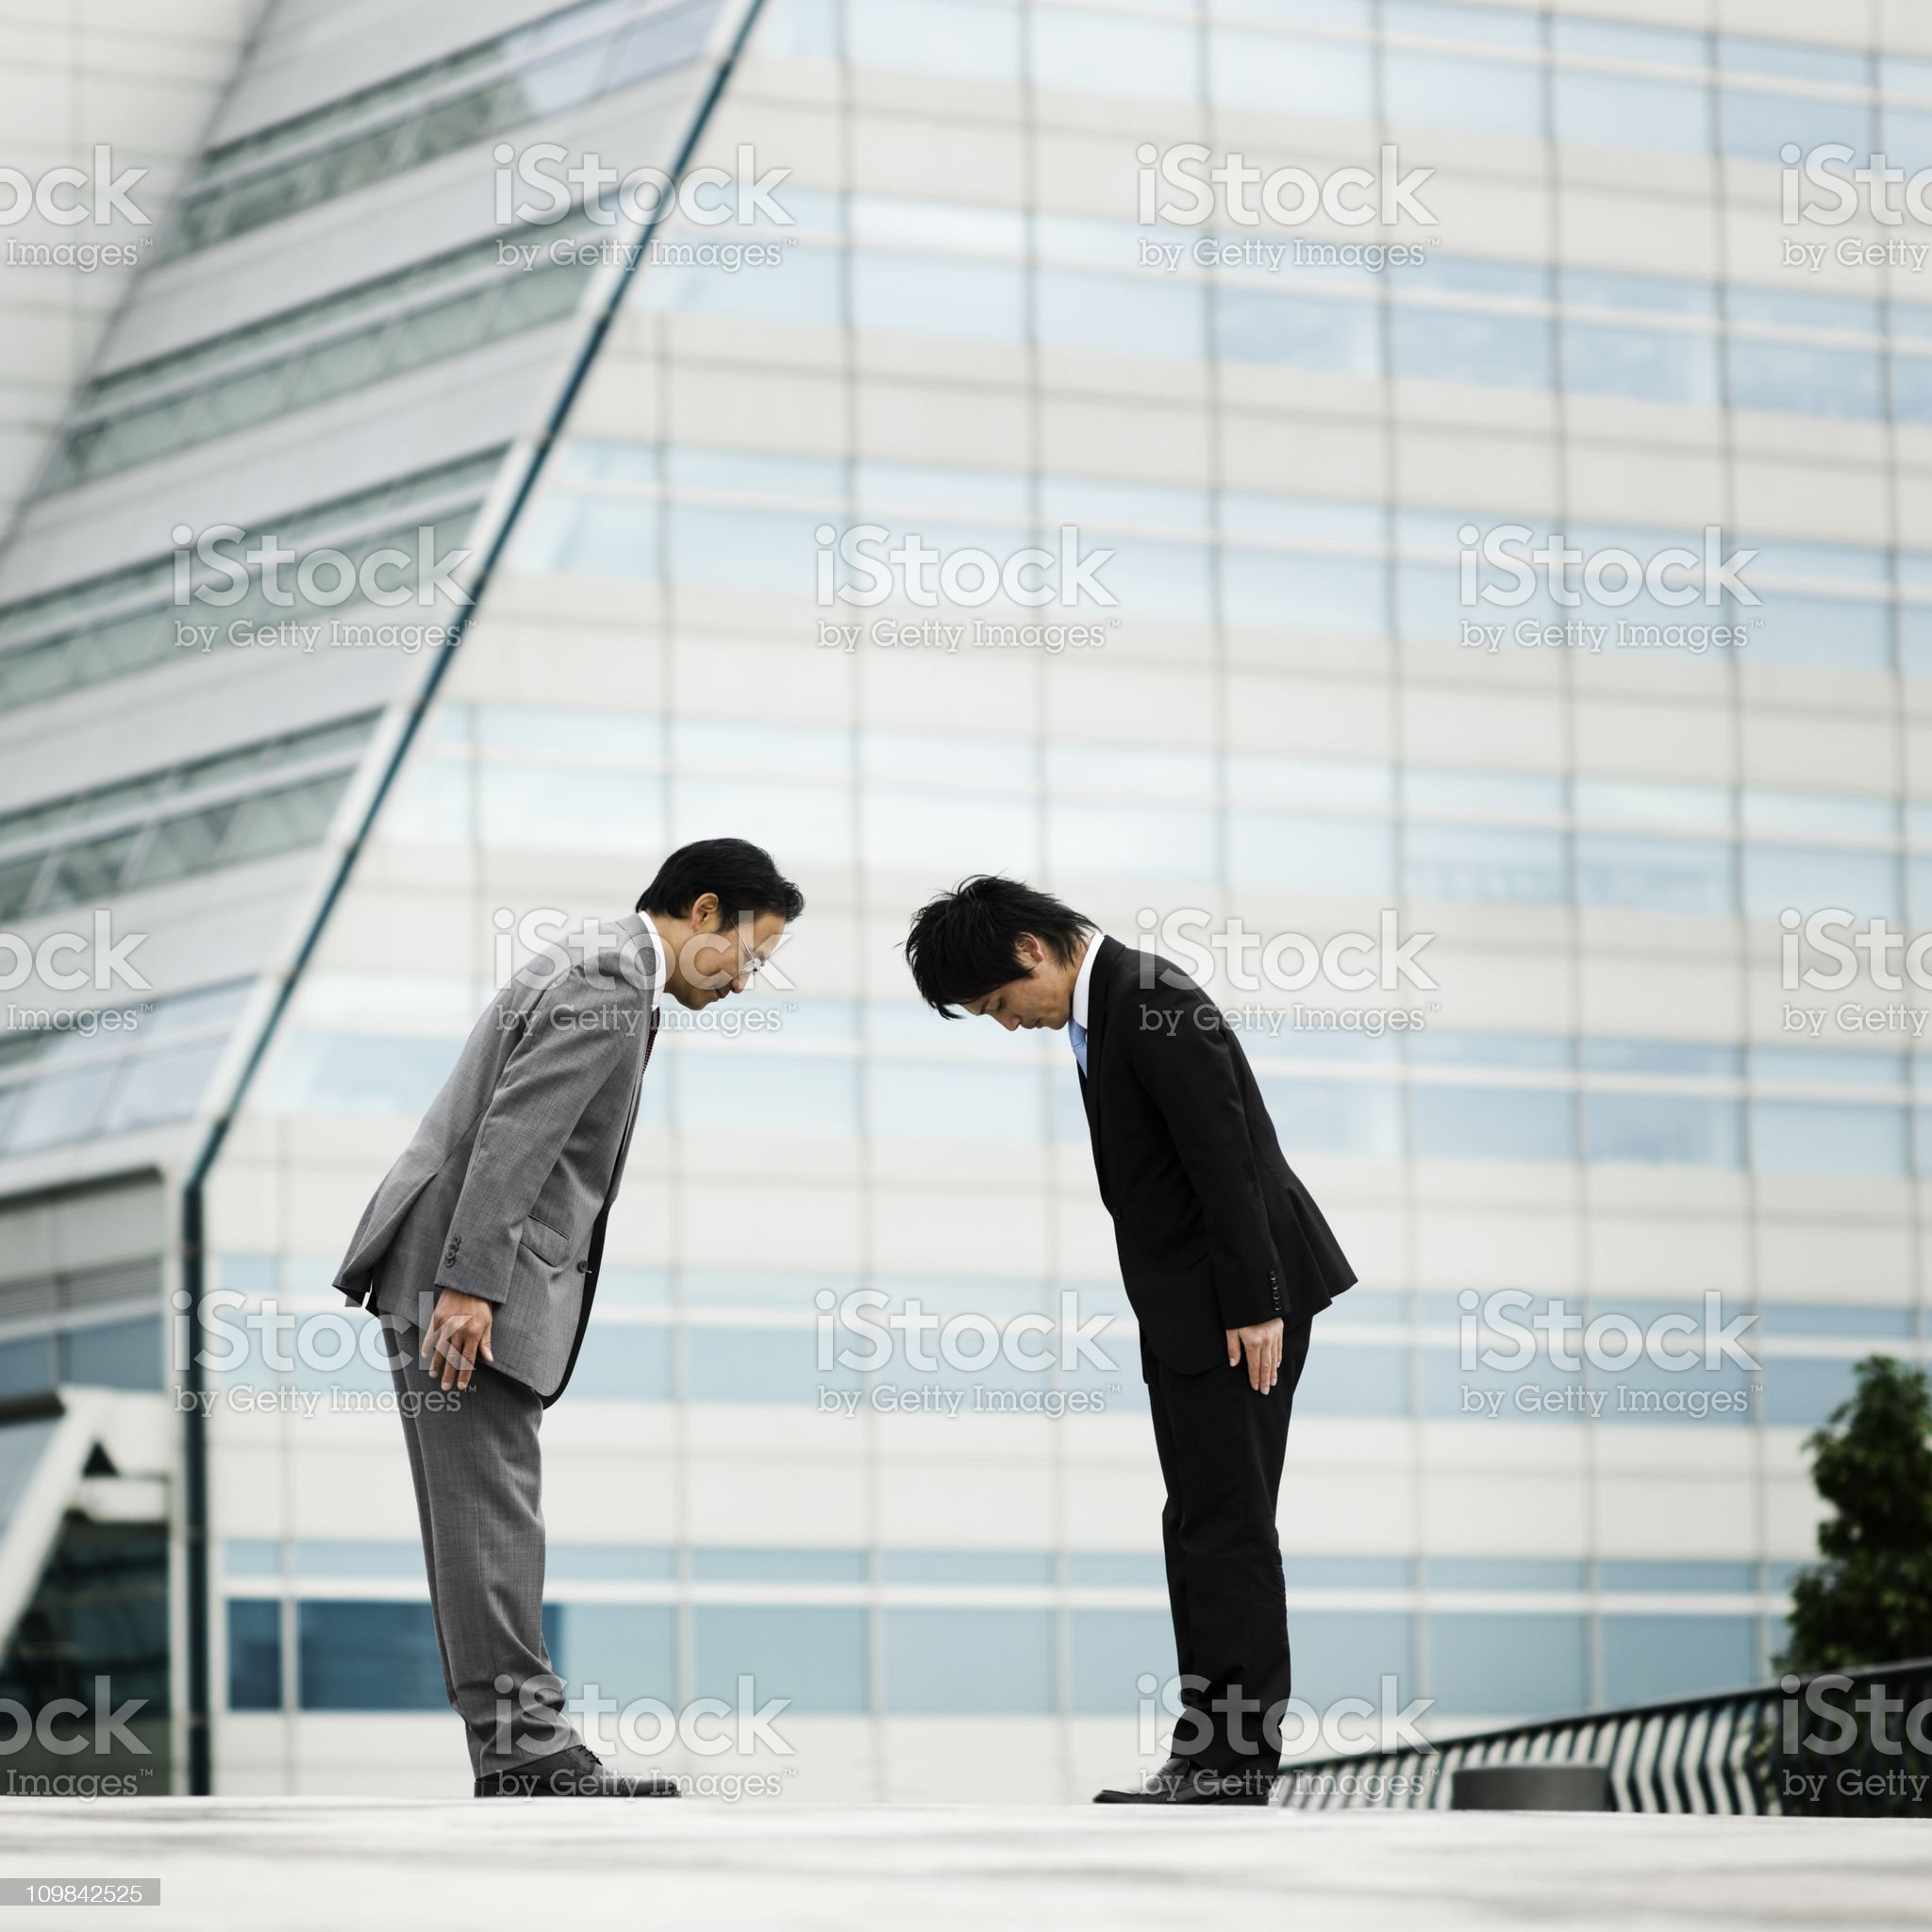 Two Asian Businessmen Bowing royalty-free stock photo